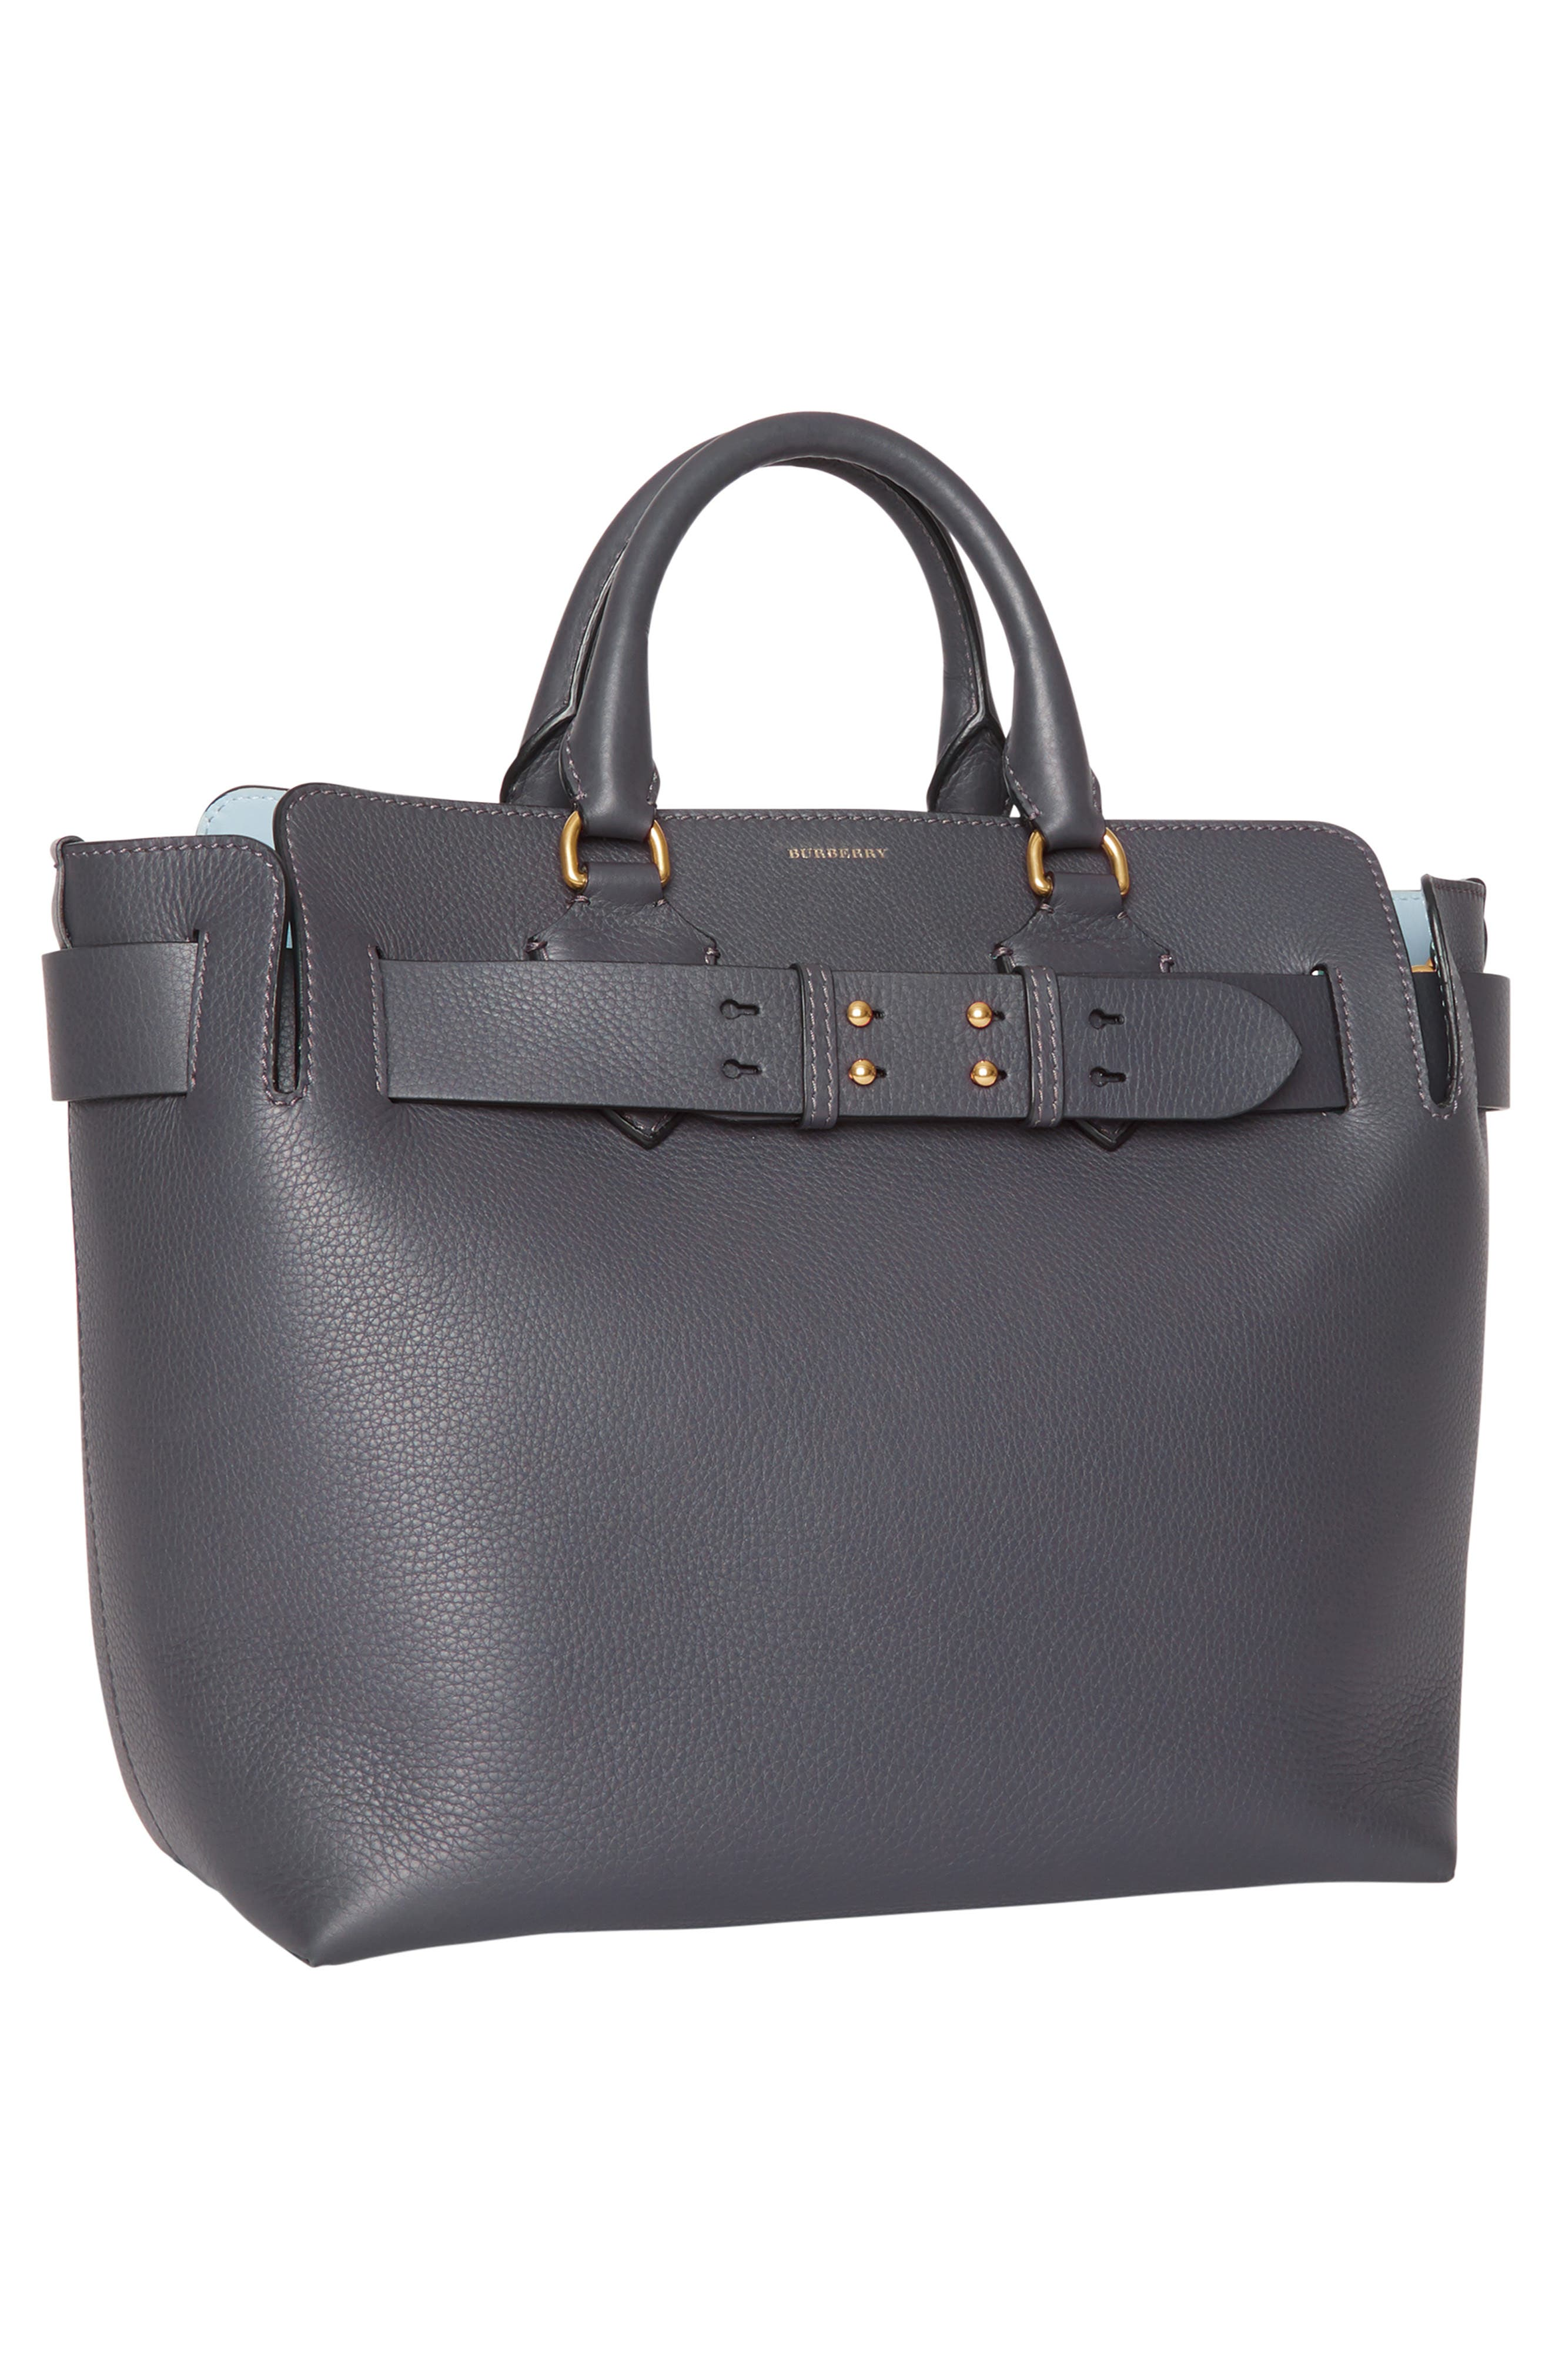 Medium Leather Belted Bag,                             Alternate thumbnail 7, color,                             CHARCOAL GREY